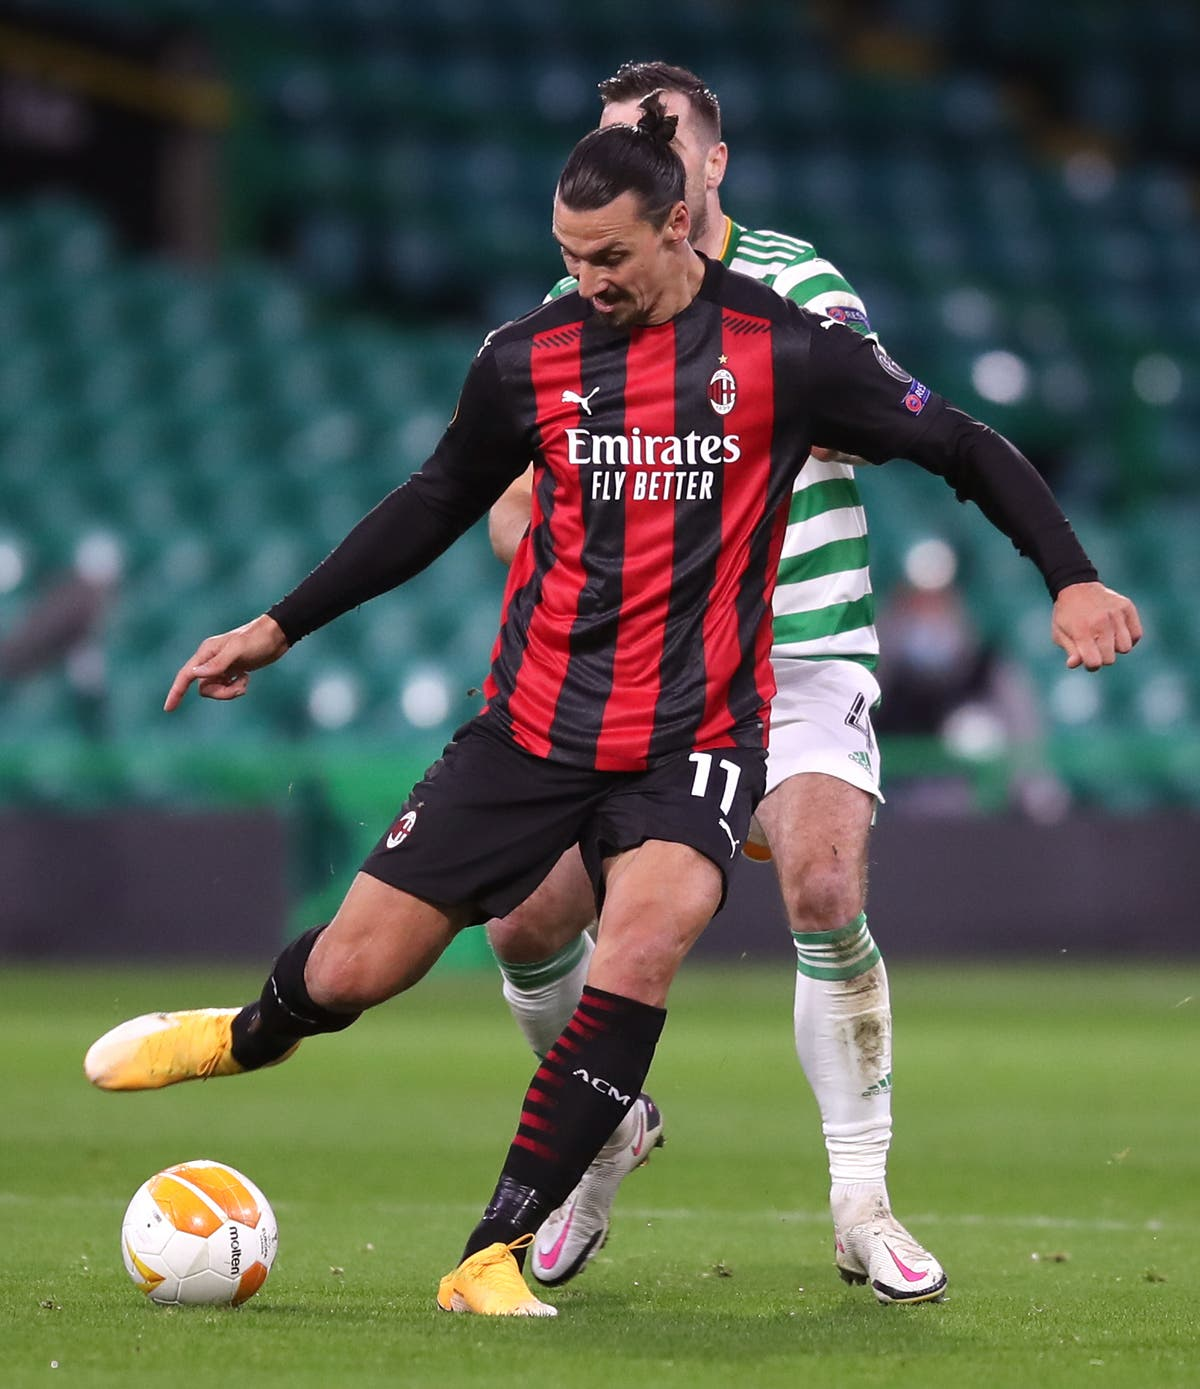 Zlatan Ibrahimovic fined by UEFA over involvement with betting company